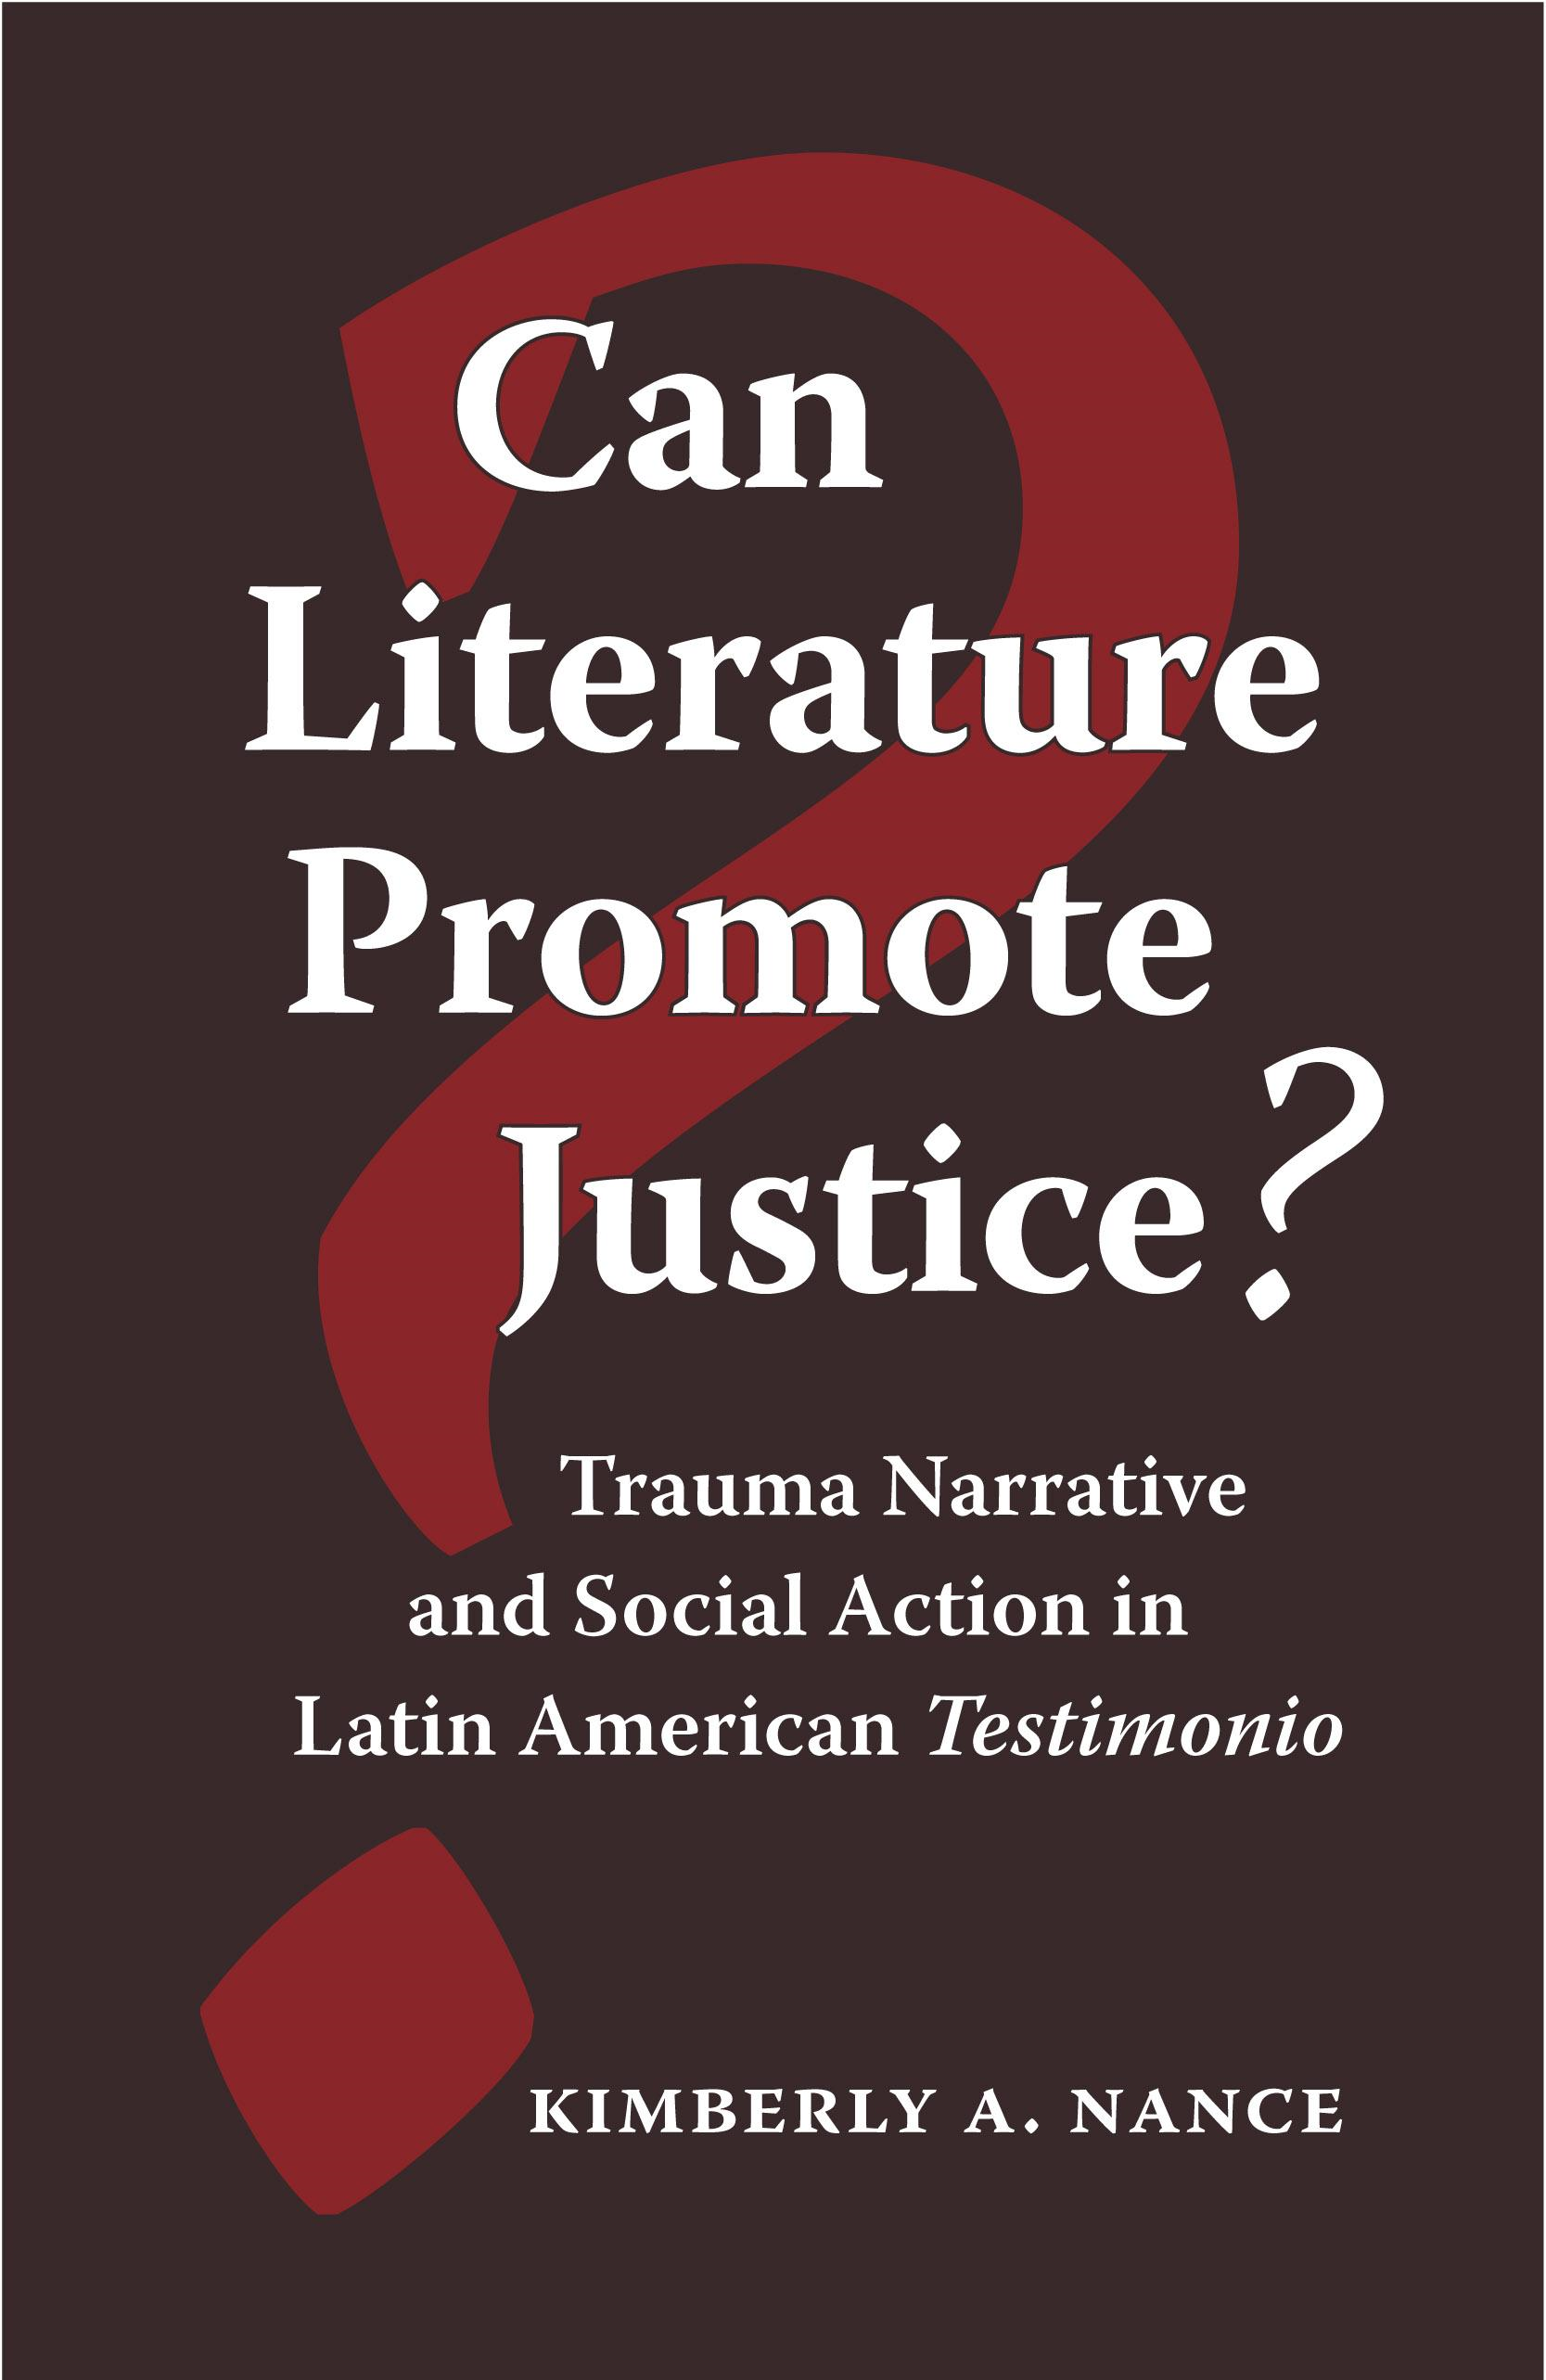 Can Literature Promote Justice?: Trauma Narrative and Social Action in Latin American Testimonio